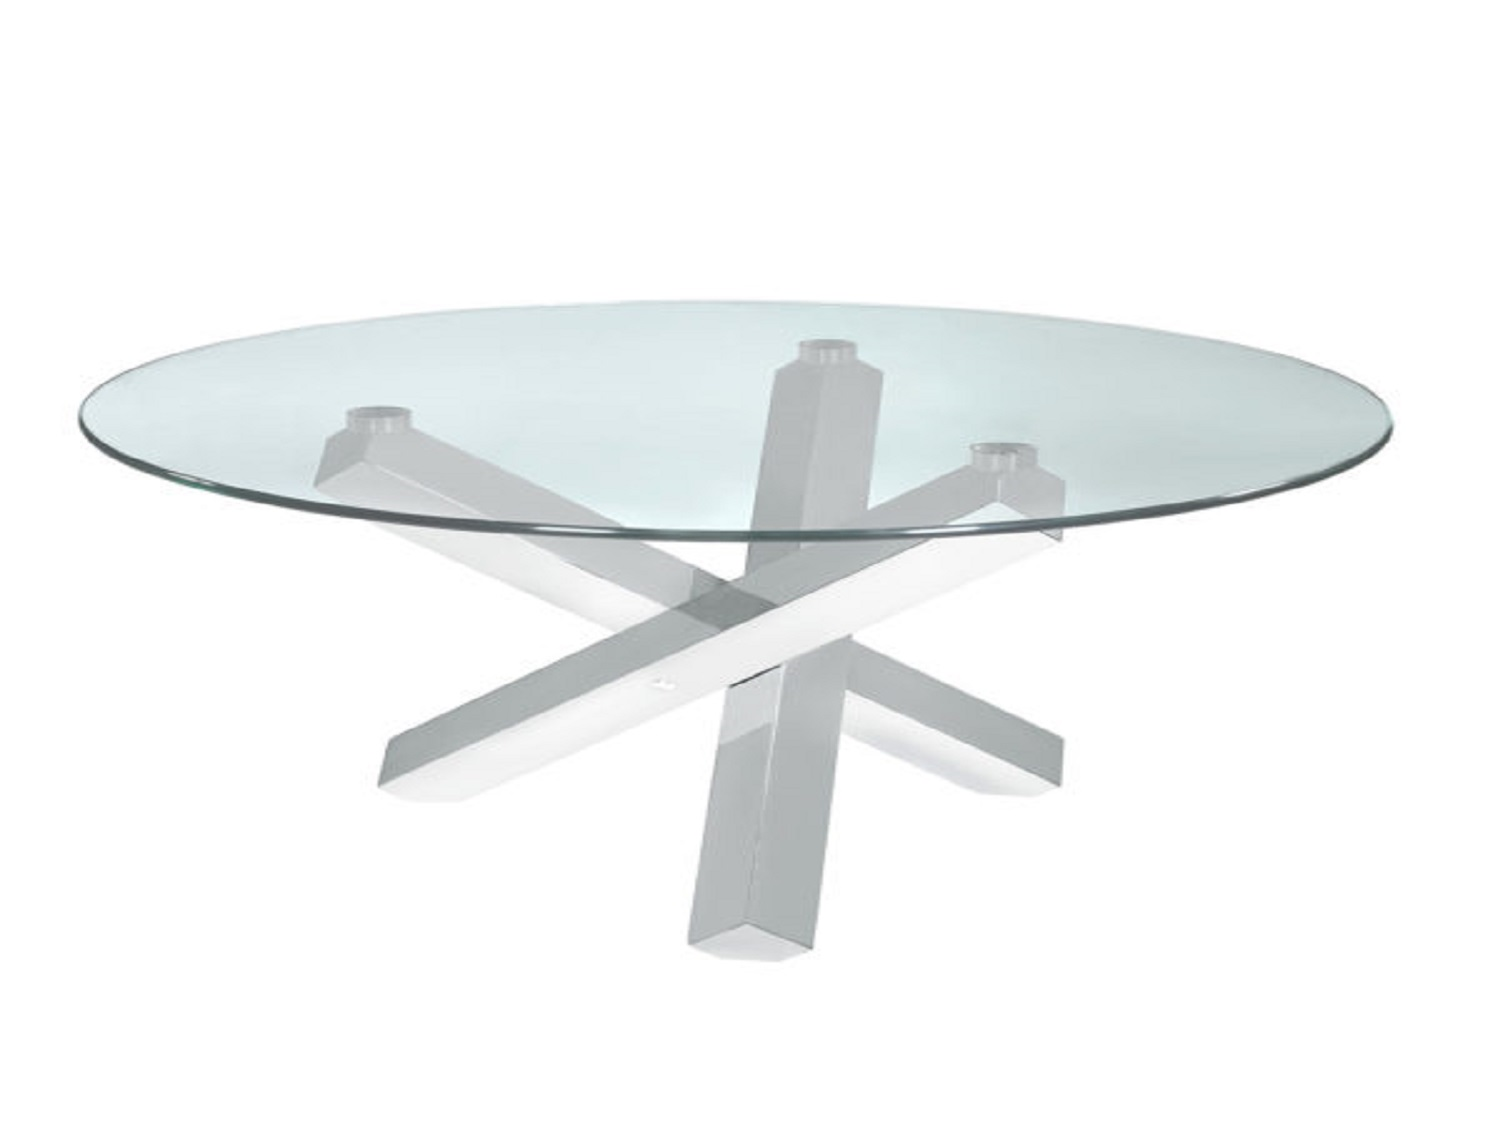 Helen Coffee Table, GY-CT-8090, Cofee Table by Midha Furniture to Brampton, Mississauga, Etobicoke, Toronto, Scraborough, Caledon, Oakville, Markham, Ajax, Pickering, Oshawa, Richmondhill, Kitchener, Hamilton and GTA area